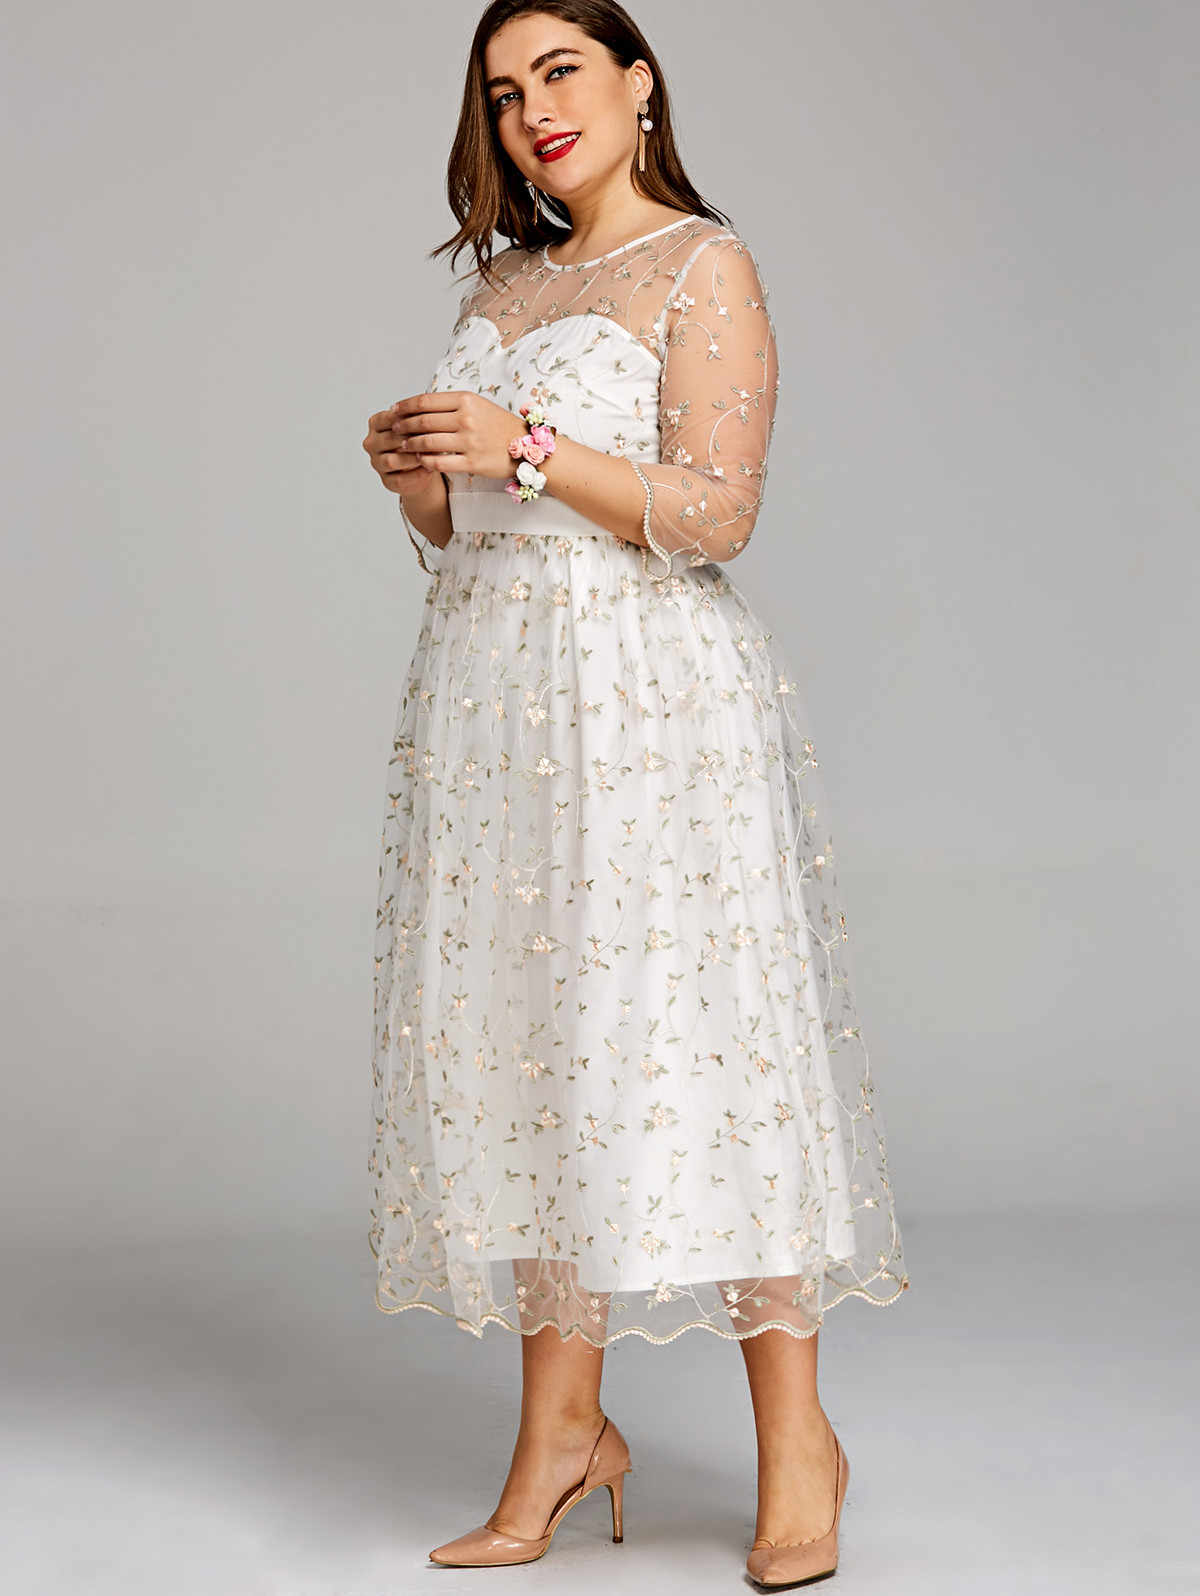 a1a7acb7d8 Gamiss Women Party Dress Plus Size 5XL Embroidery Floral Midi Tulle Dress  Scalloped Edges Elegant O Neck A-Line Dresses Vestidos